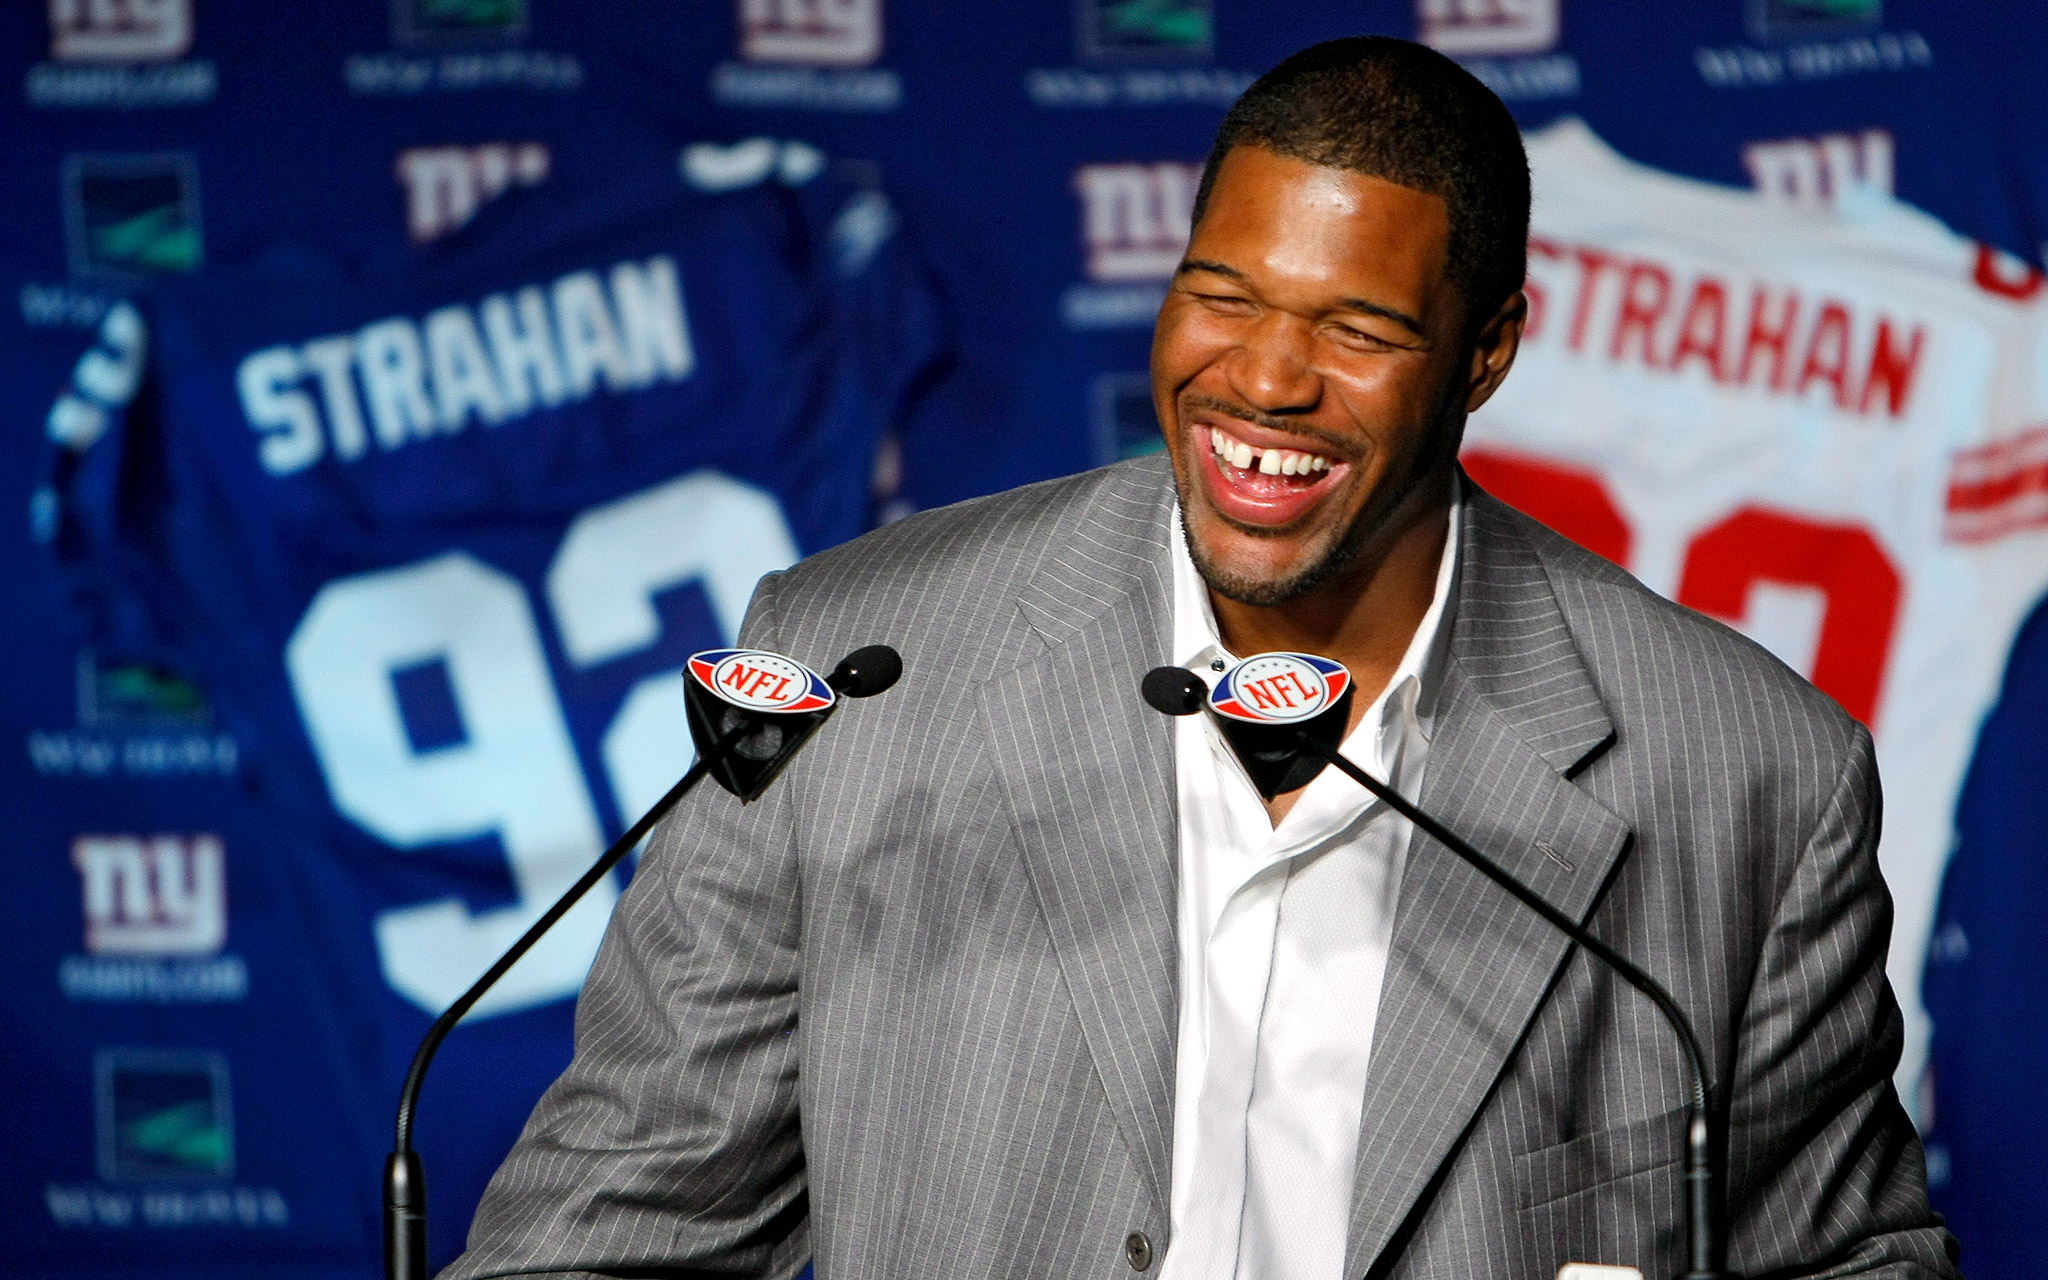 Usually in sports you go out when they tell you to go out, Michael Strahan said during his retirement announcement in June 2008. I have an opportunity to leave when I want to leave. That's the best thing about this.